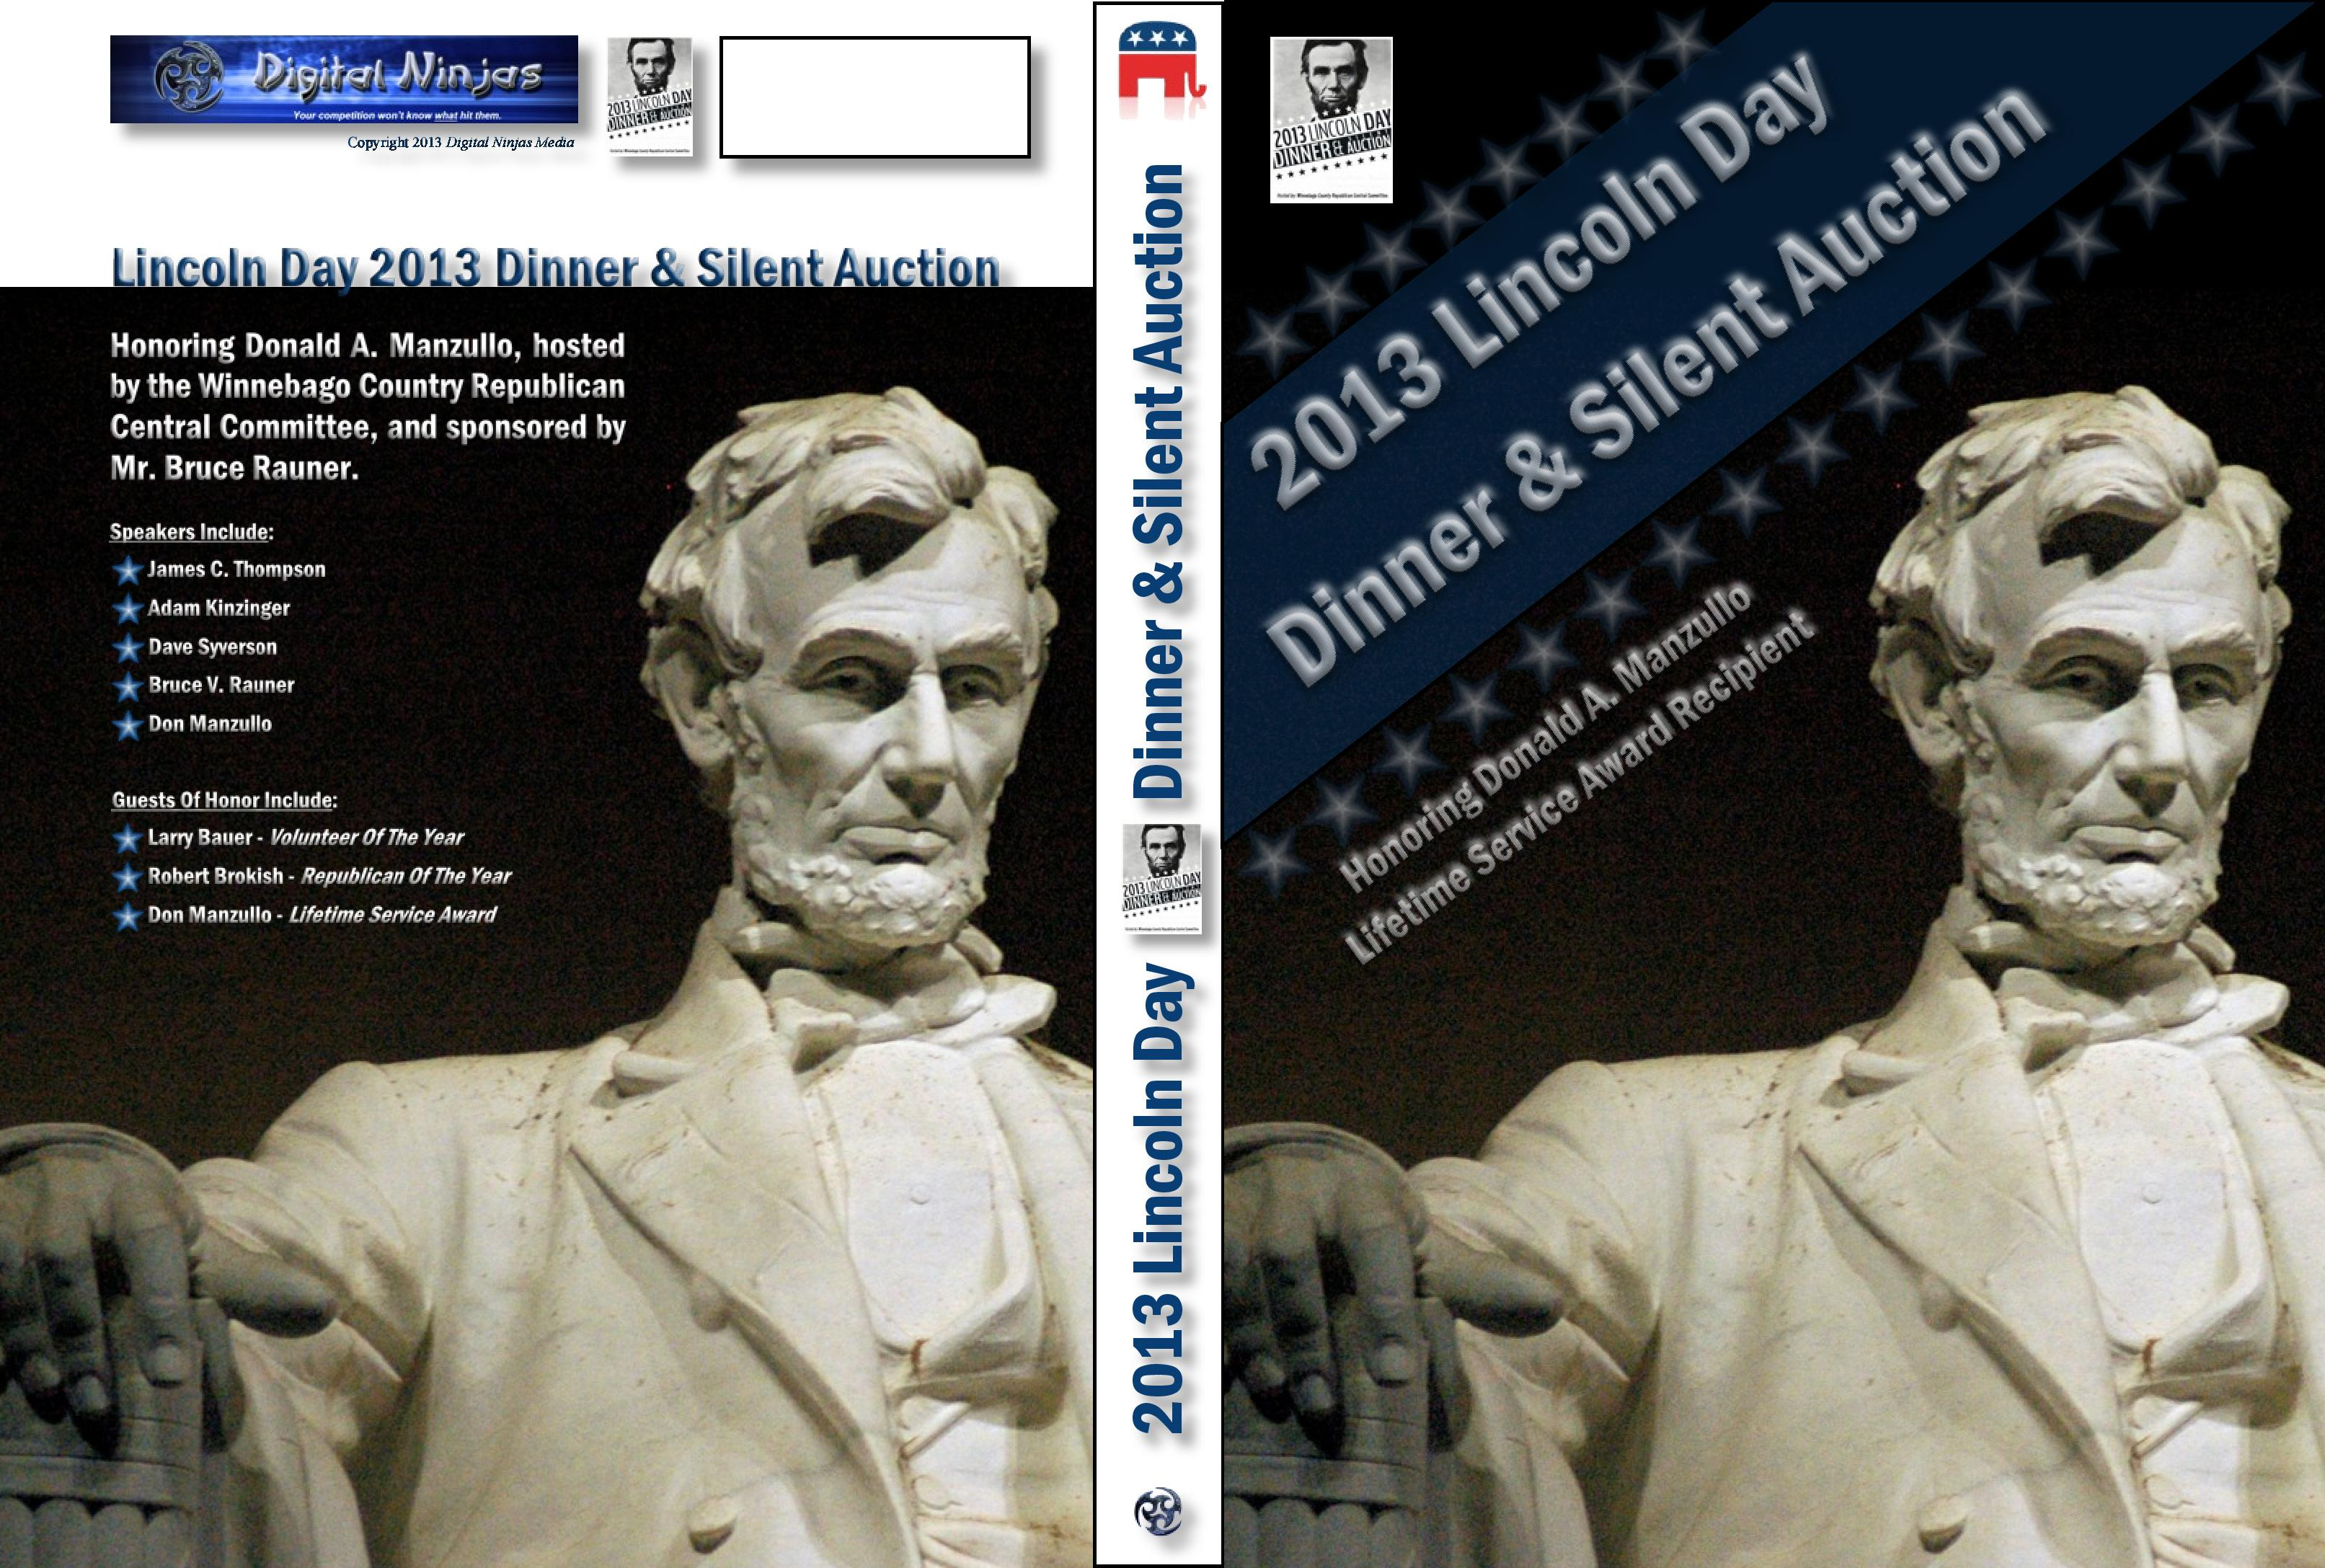 Lincoln Day DVD Cover